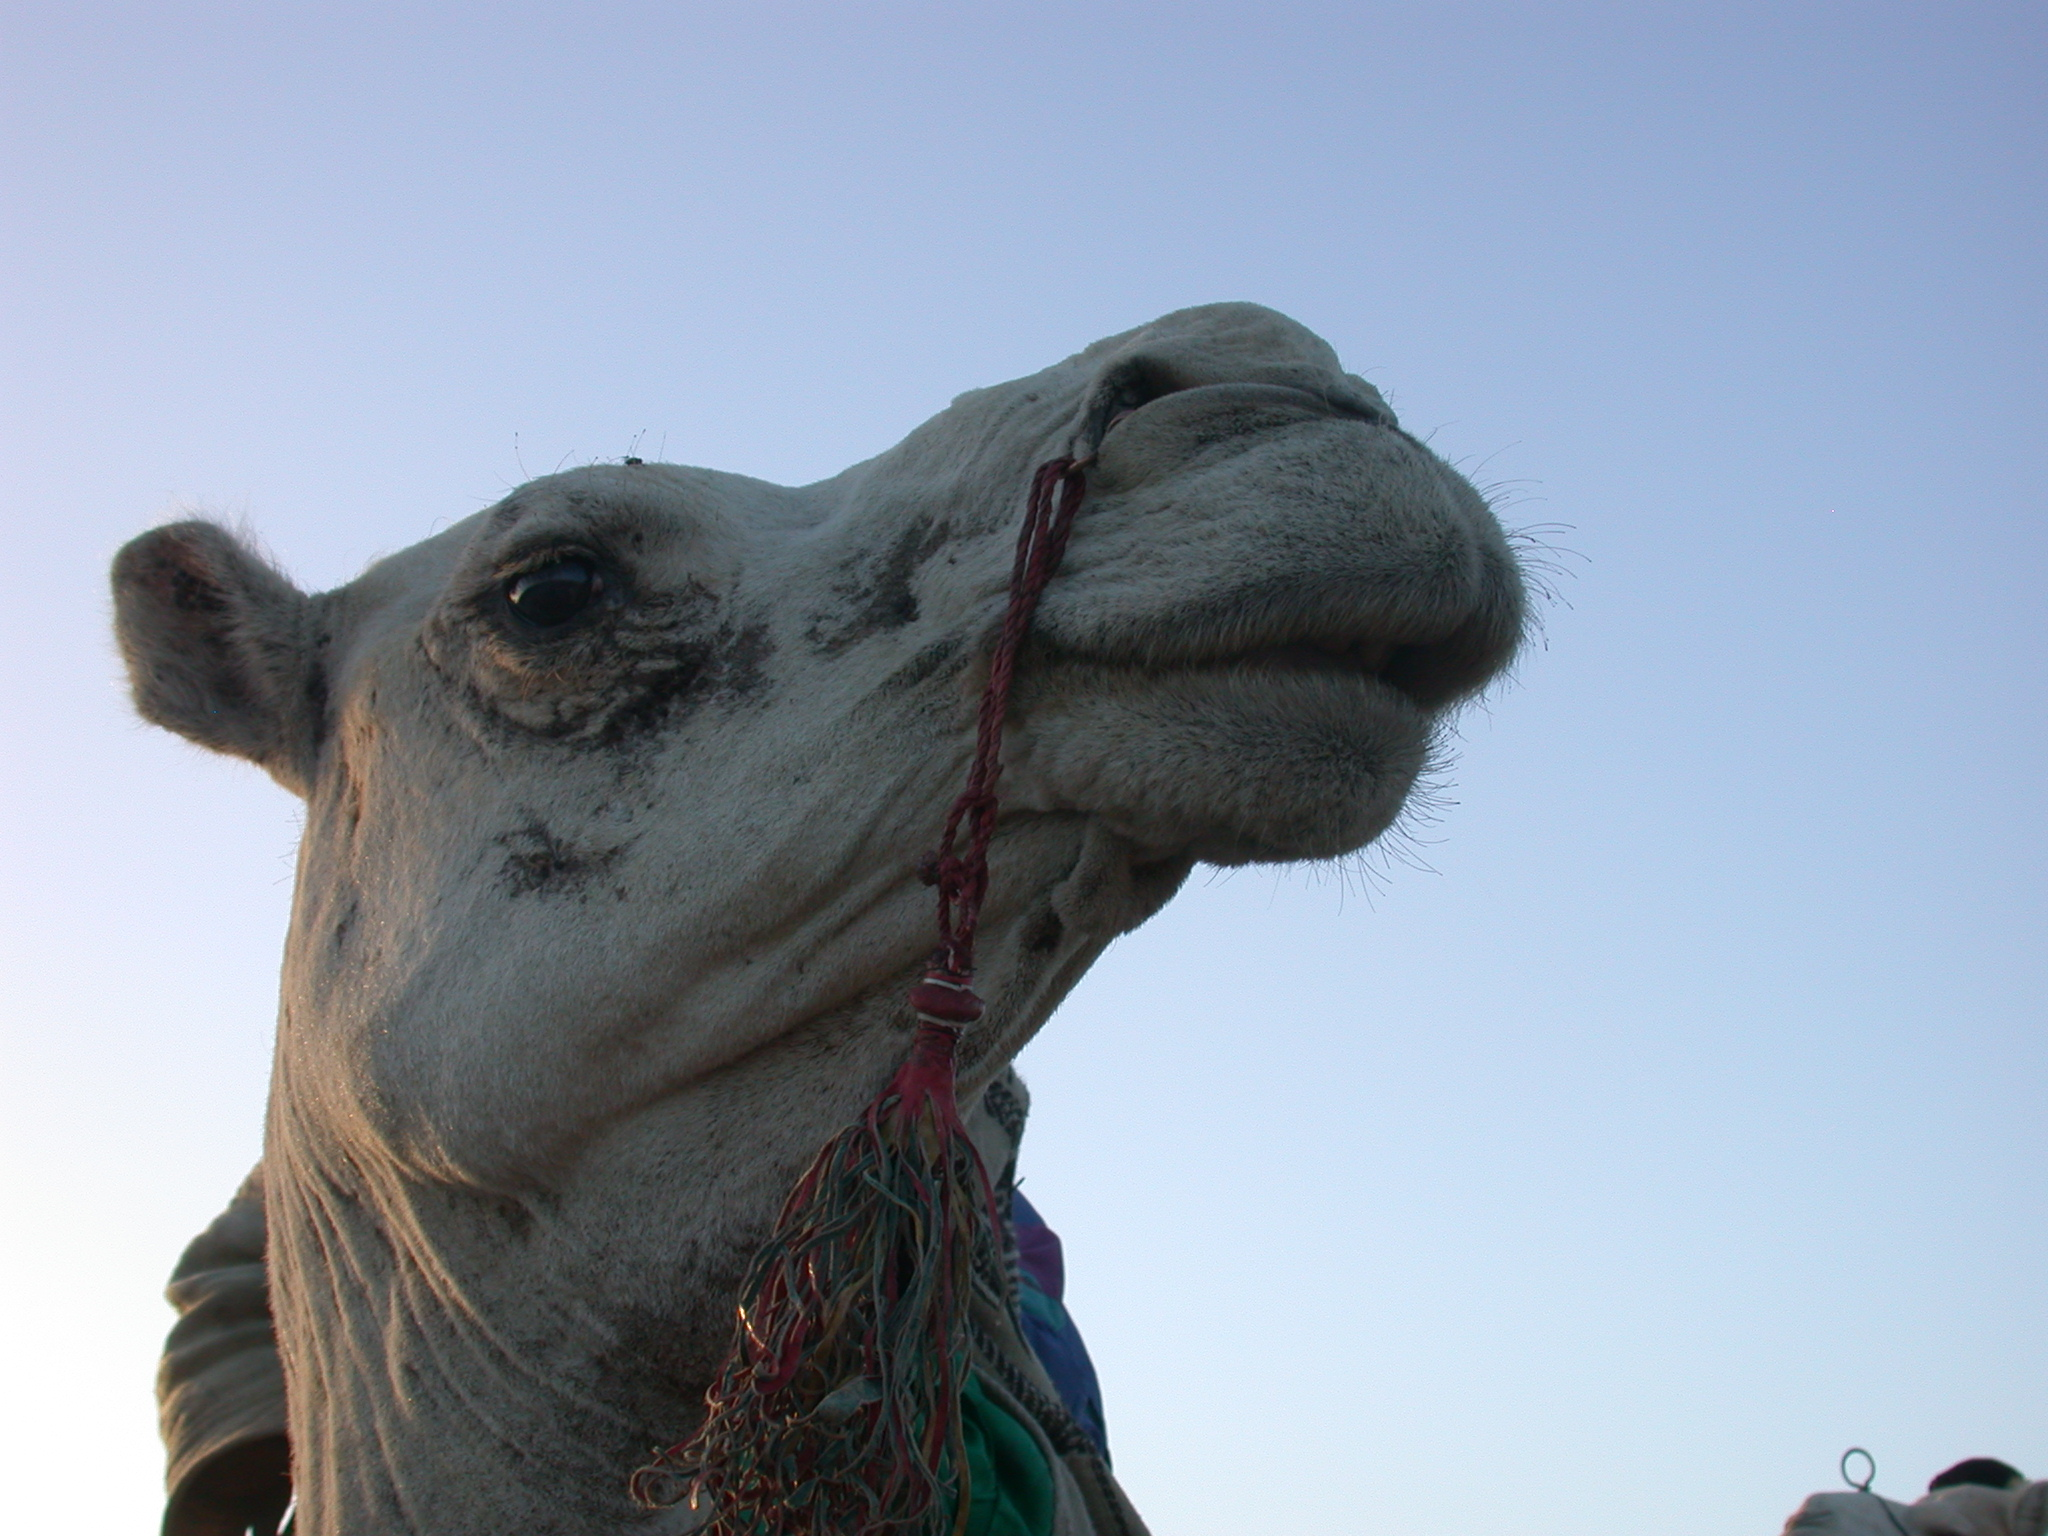 Camel in Profile, Festival in the Desert, Essakane, Mali